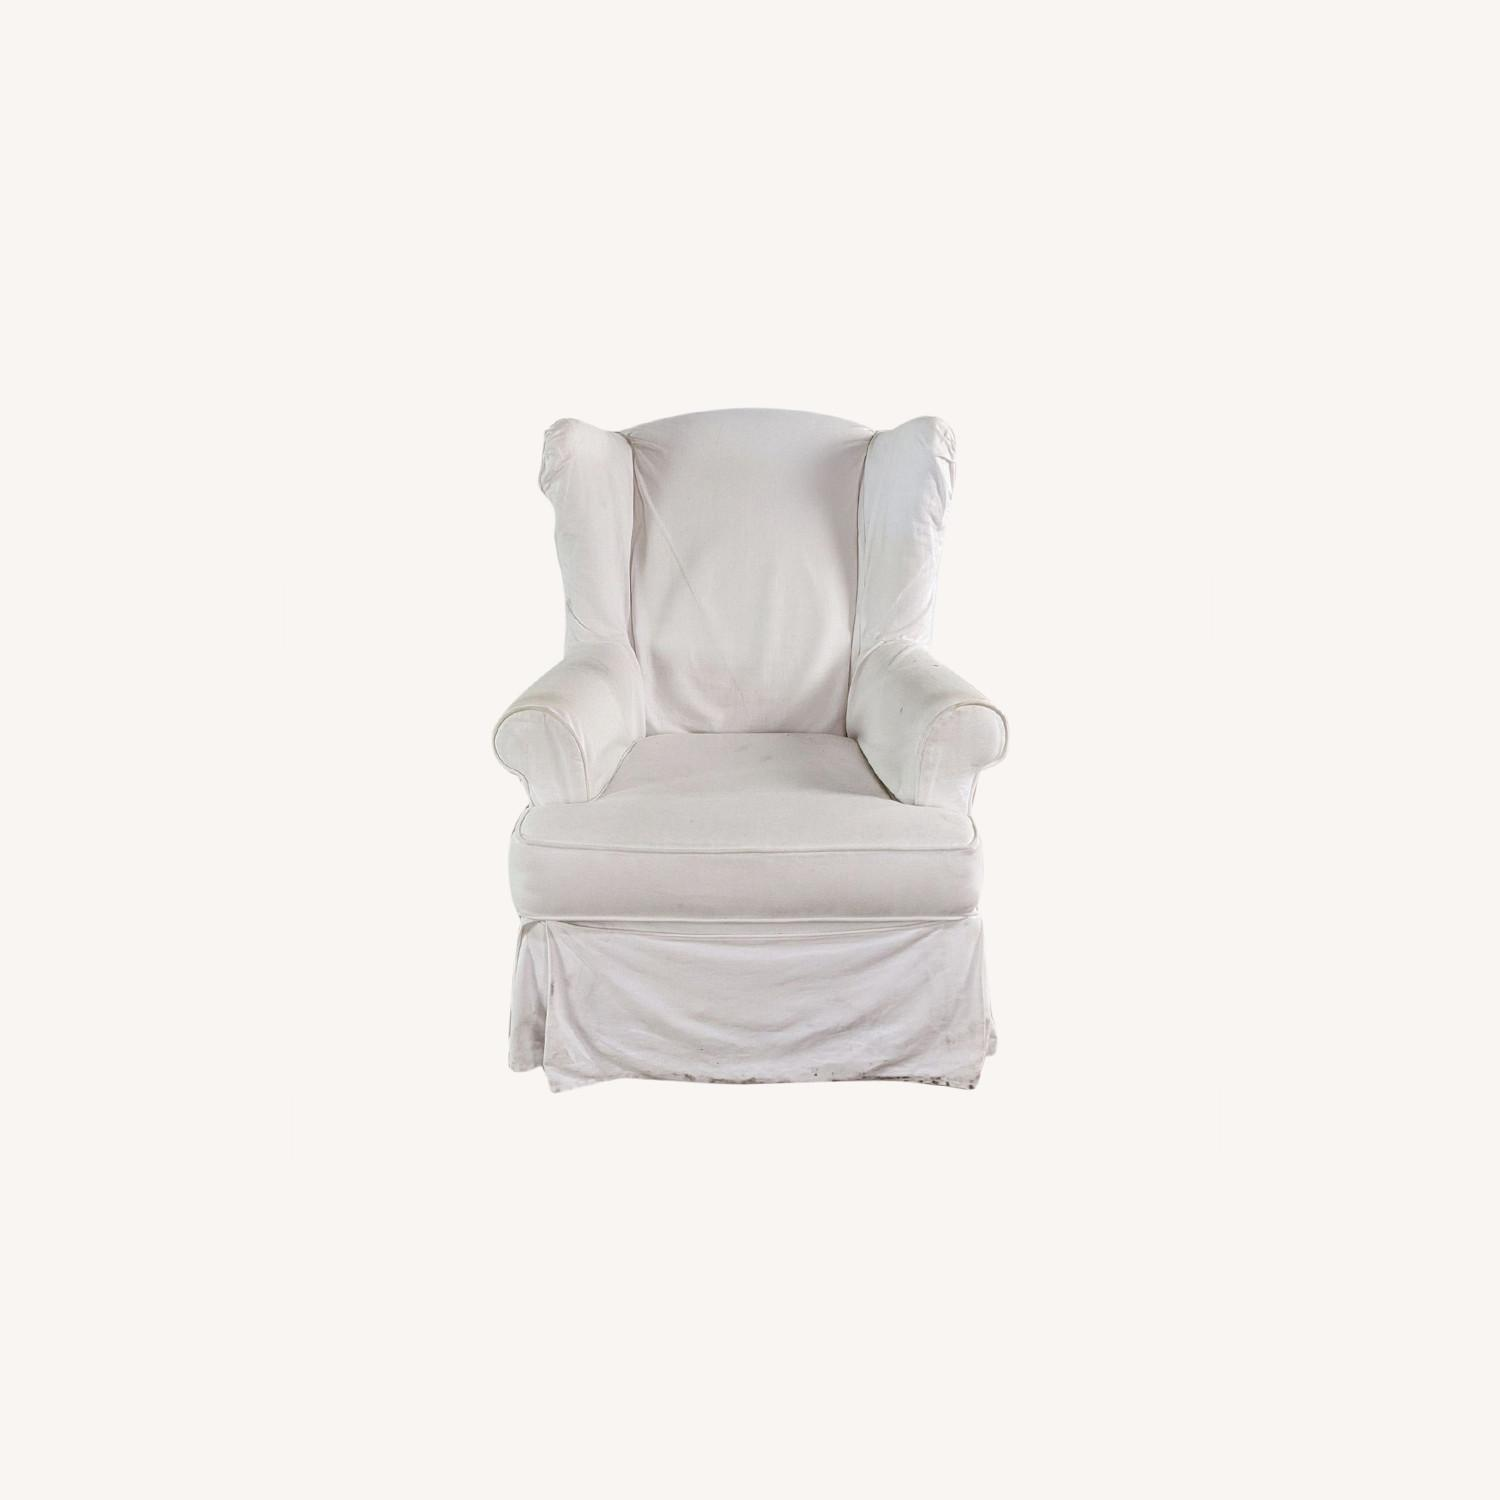 Pottery Barn Glider with Slip Cover - image-0